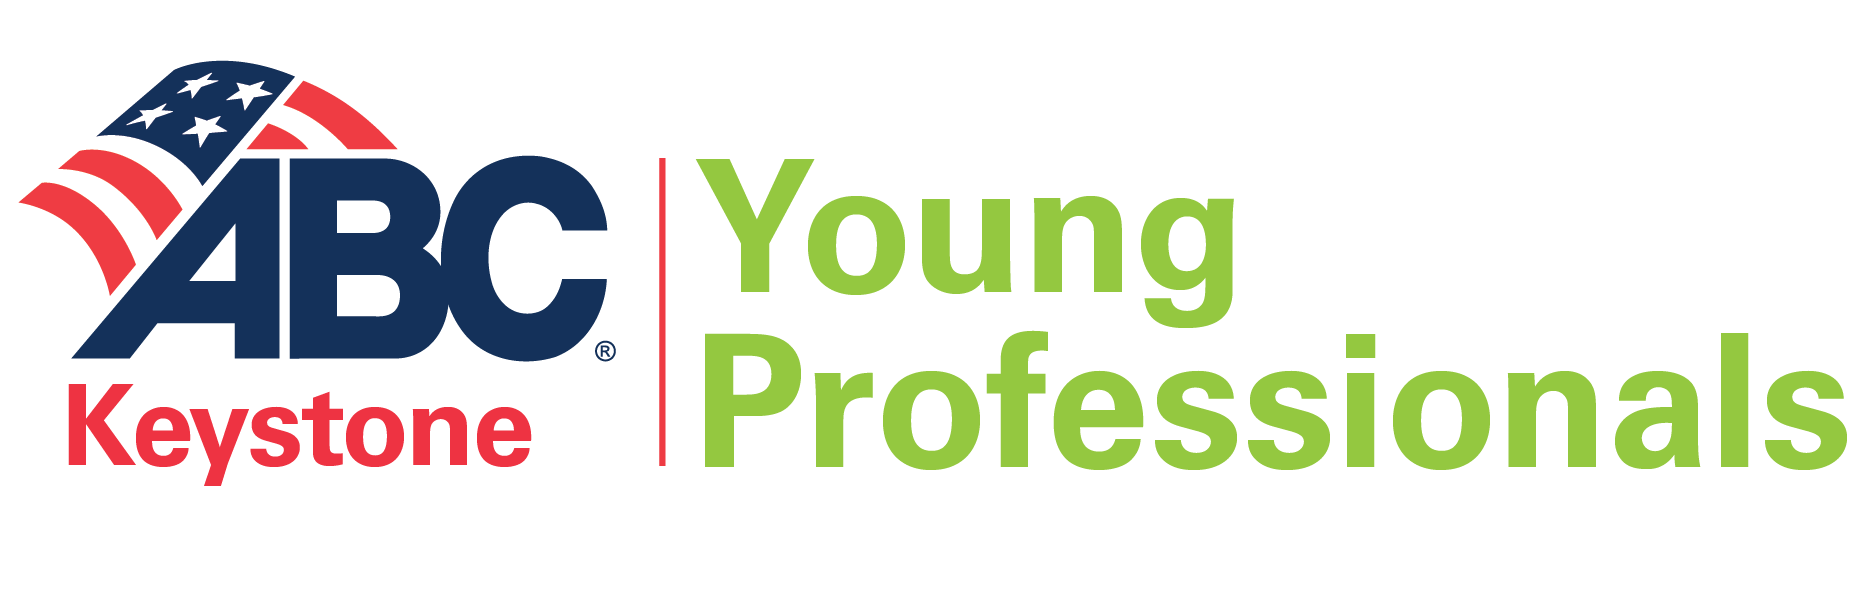 ABC Keystone Young Professionals